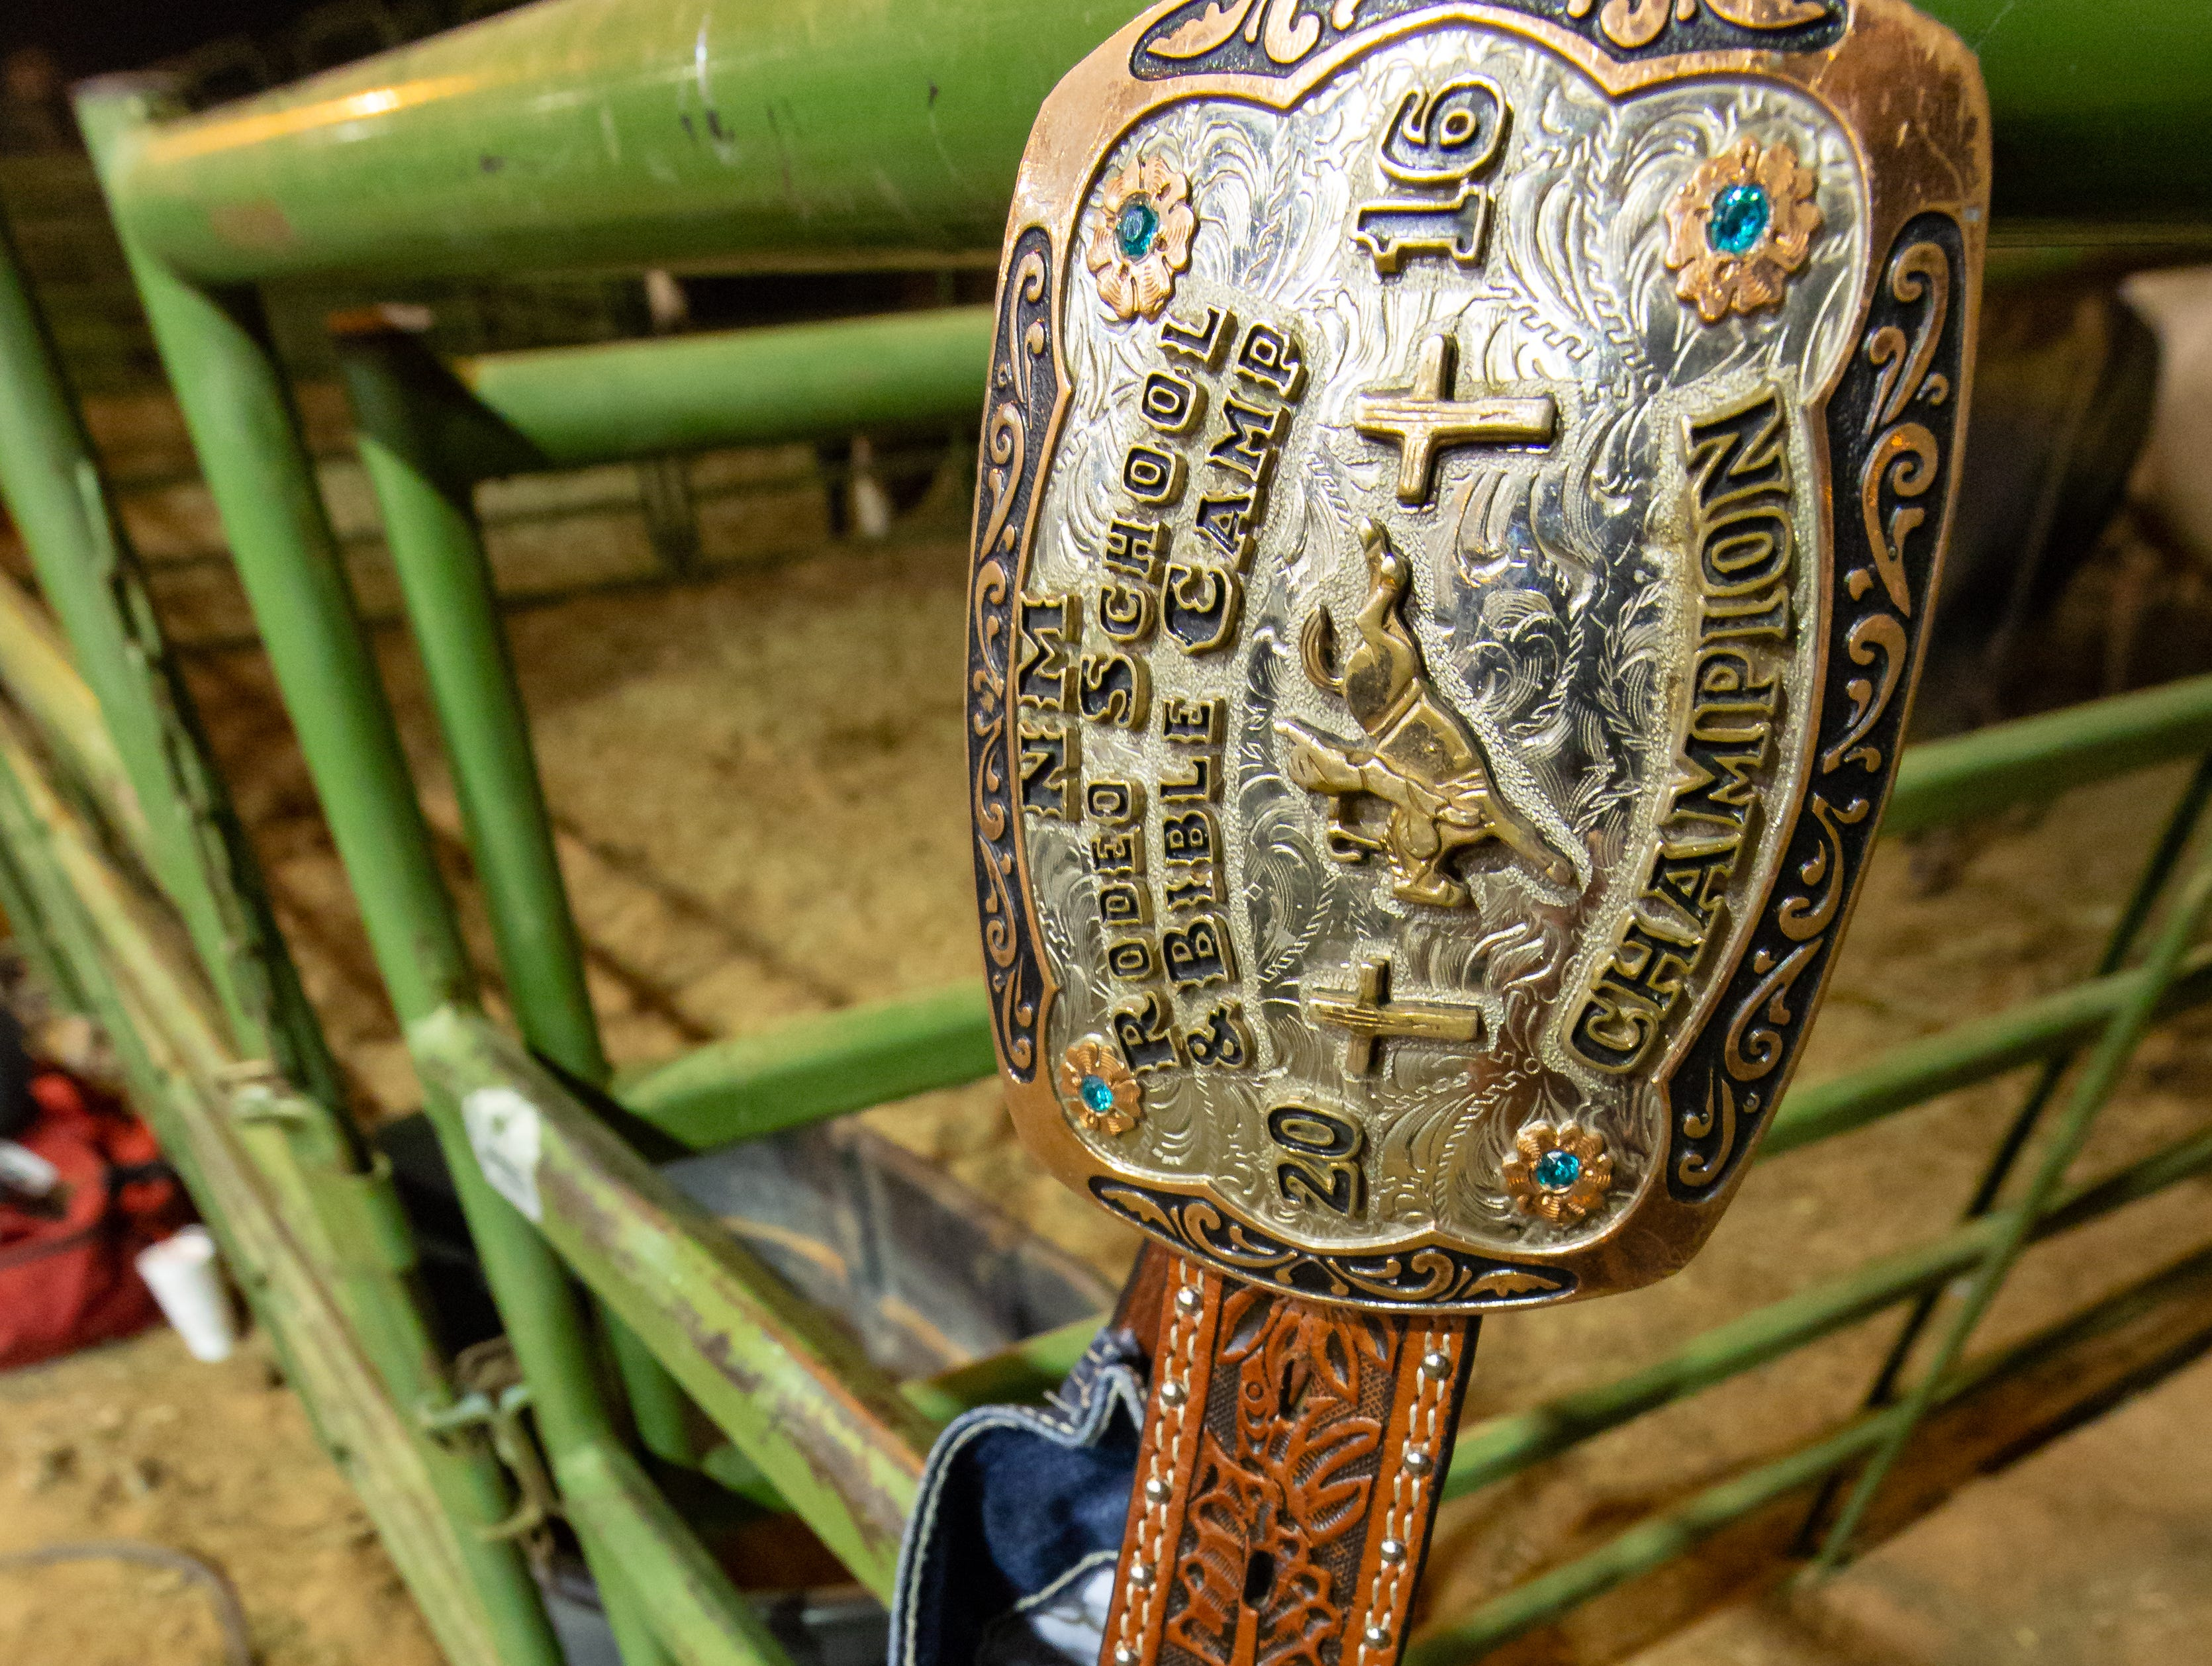 A belt buckle from the New Mexico Rodeo School & Bible Camp champion is pictured holding a pair of paints on the corral fencing in the Pete V. Domenici Arena on Saturday, Sept. 29, 2018, during the Southern New Mexico State Fair & Rodeo at the Southern New Mexico State Fairgrounds.